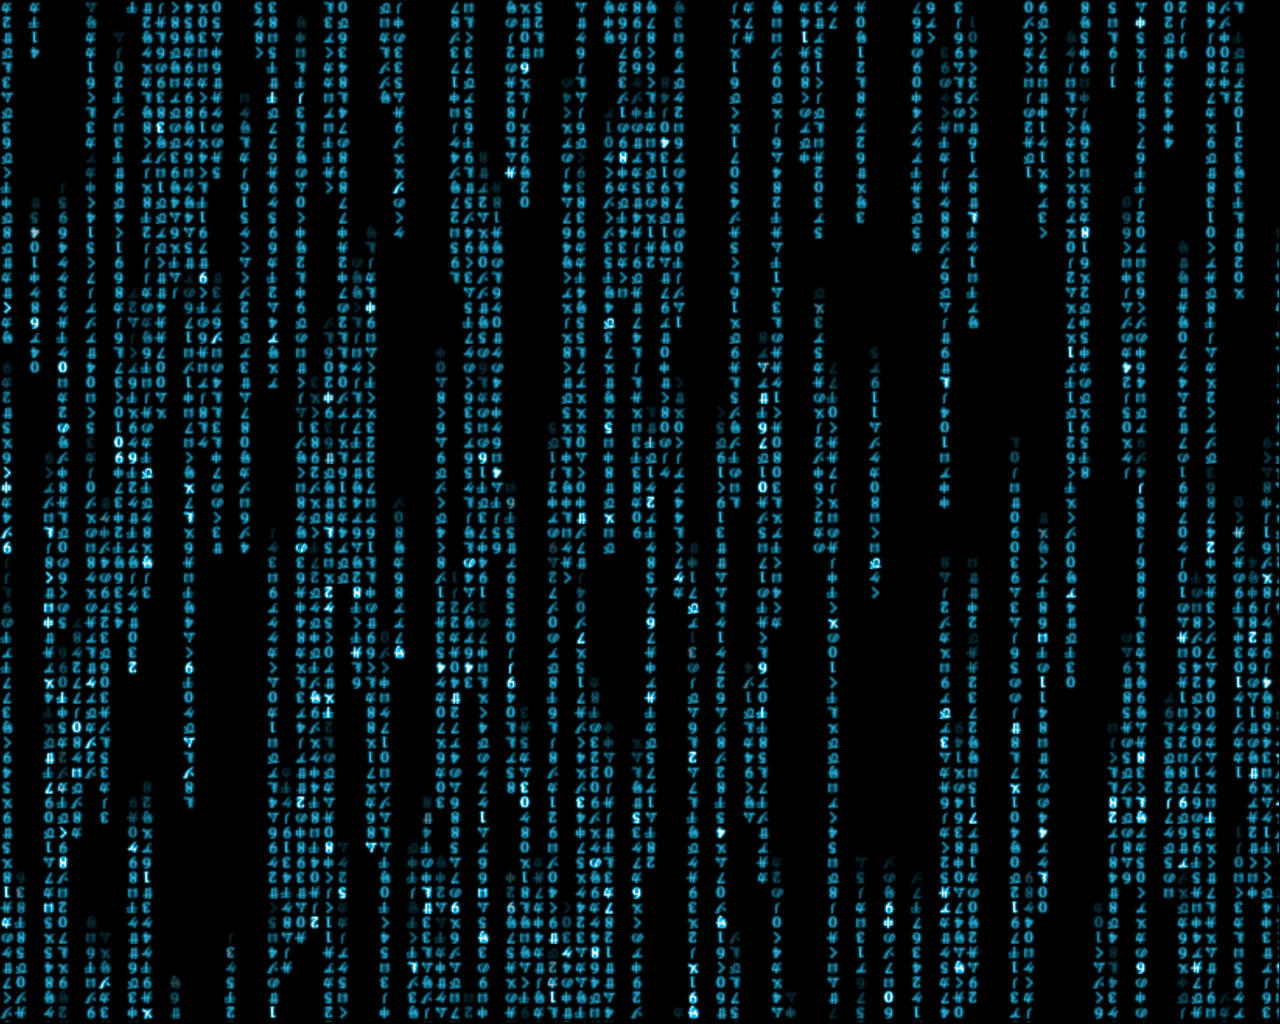 Matrix wallpaper moving blue